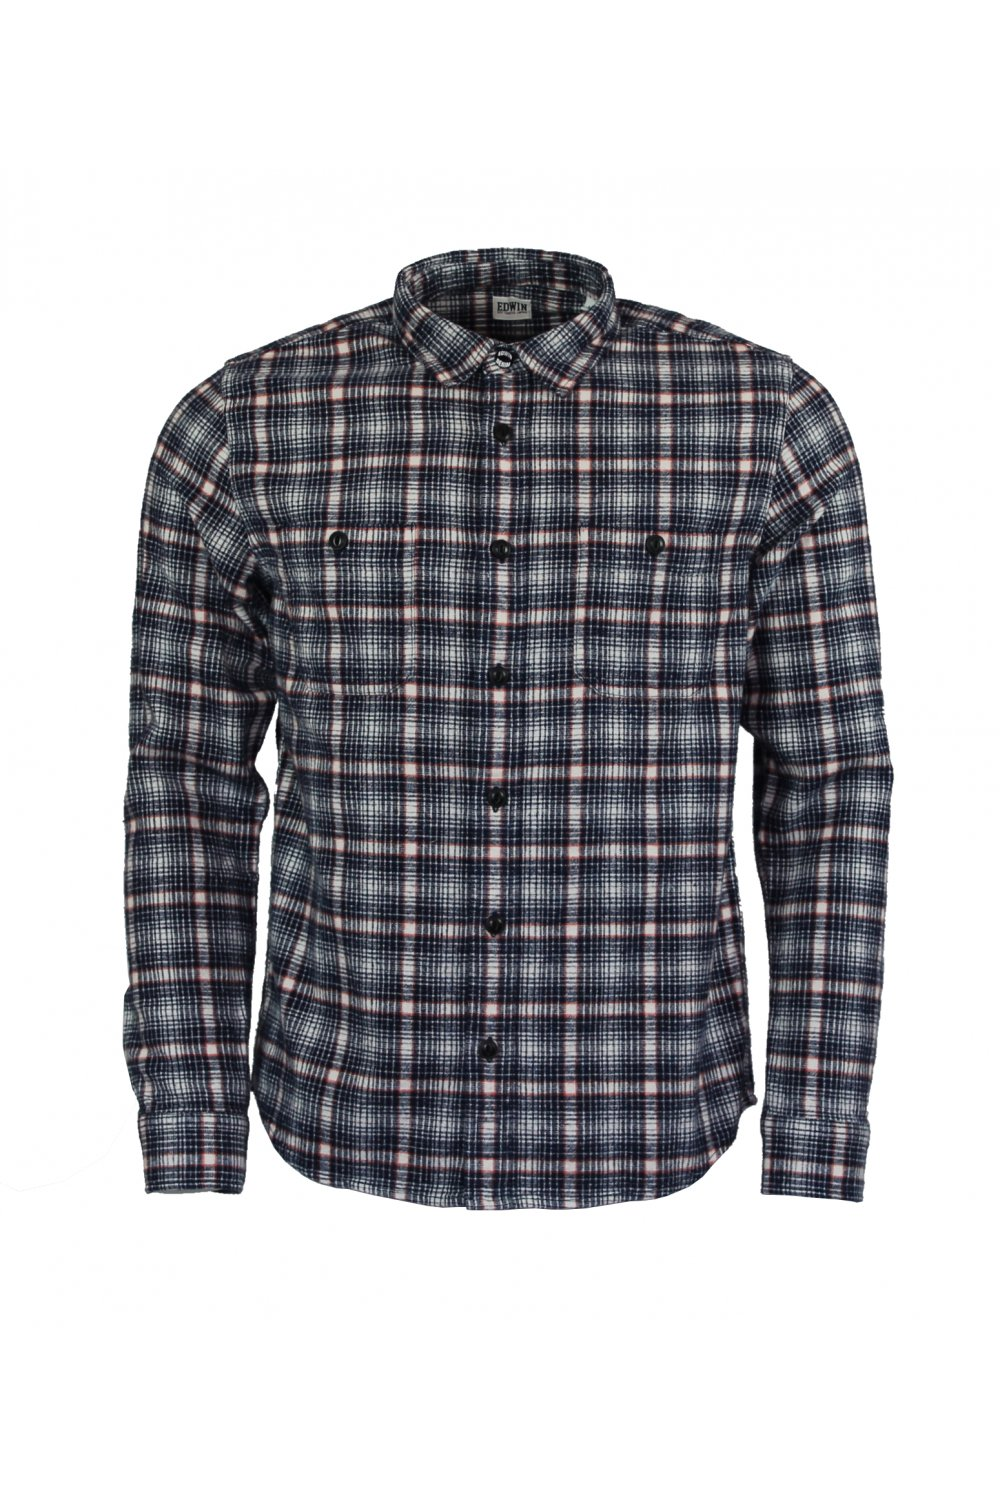 1f44a6e9eb9e Edwin Labour Long-Sleeved Plaid Shirt (Navy Off-White Check ...